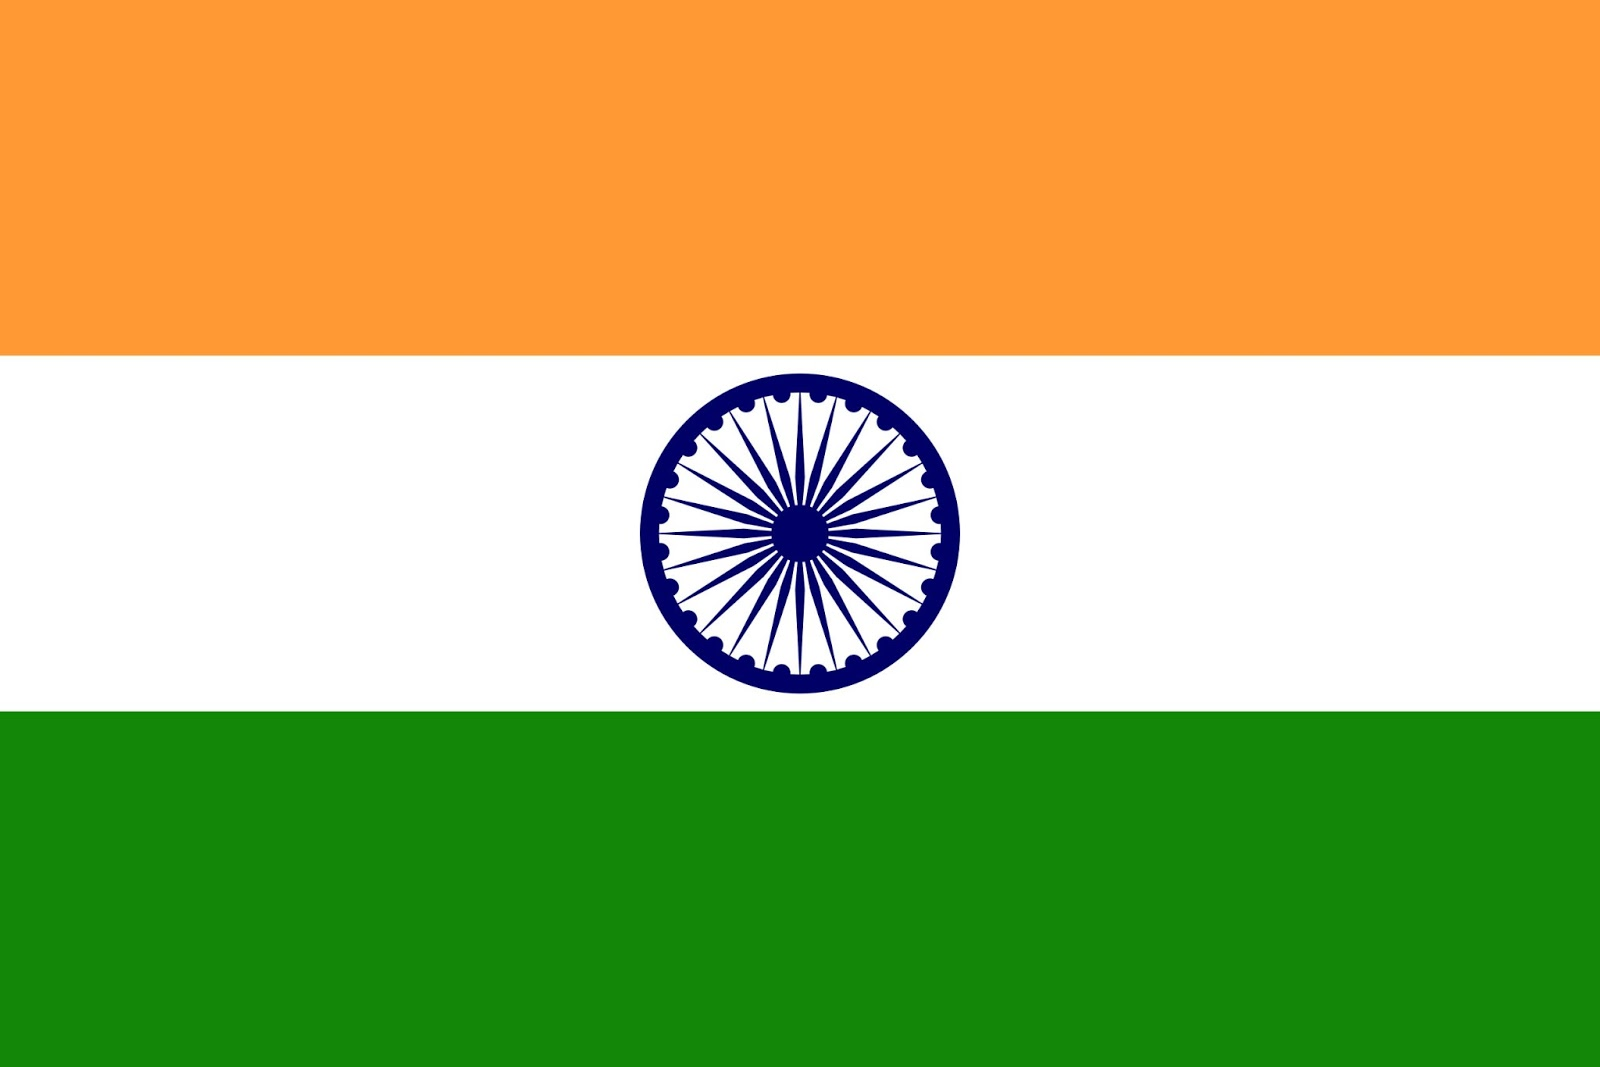 Indian Flag Images Hd720p: Download Free HD Wallpapers: Indian